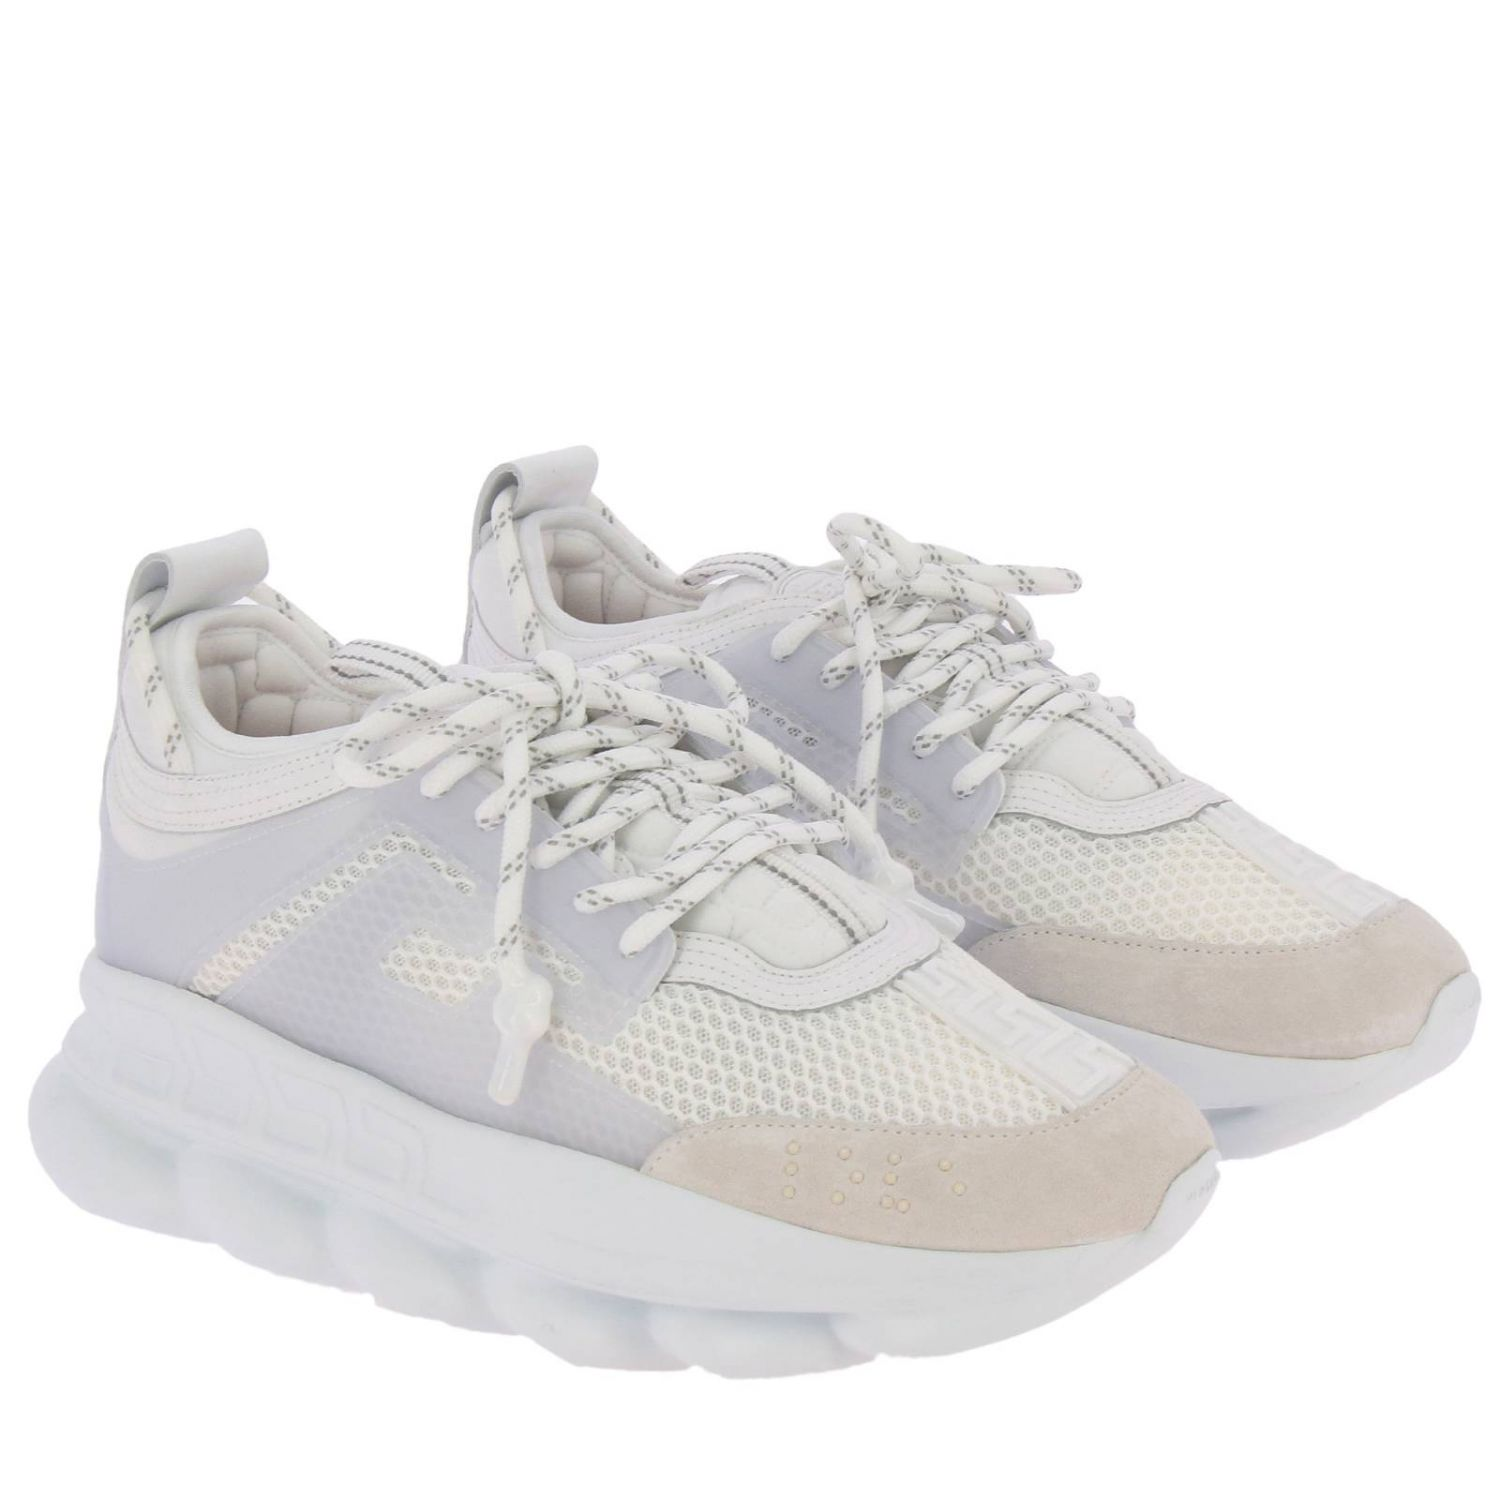 Chaussures homme Versace blanc 2